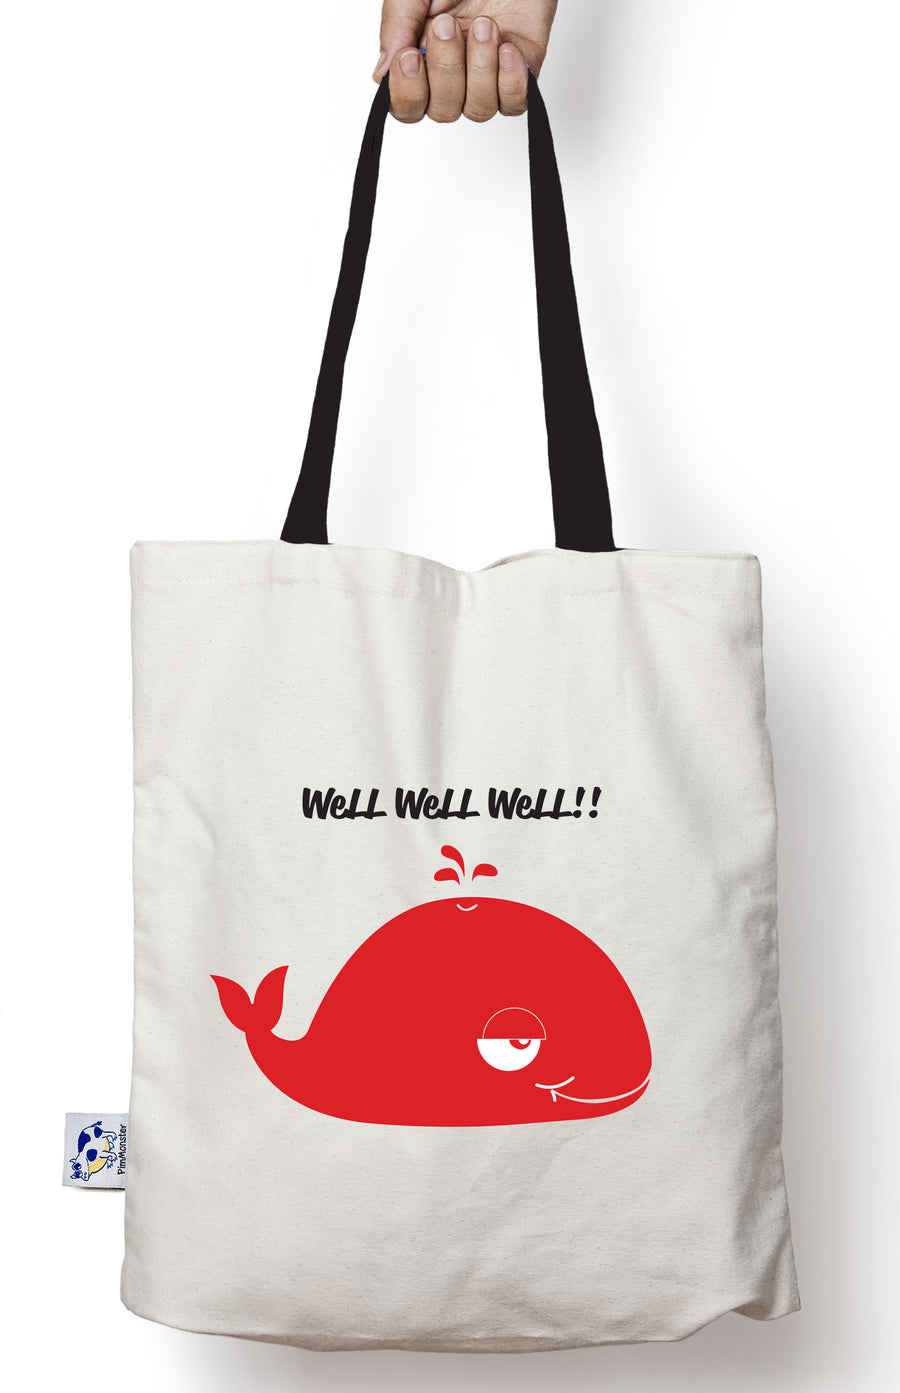 Well, Well, Whale! tote bag - Pimmonster